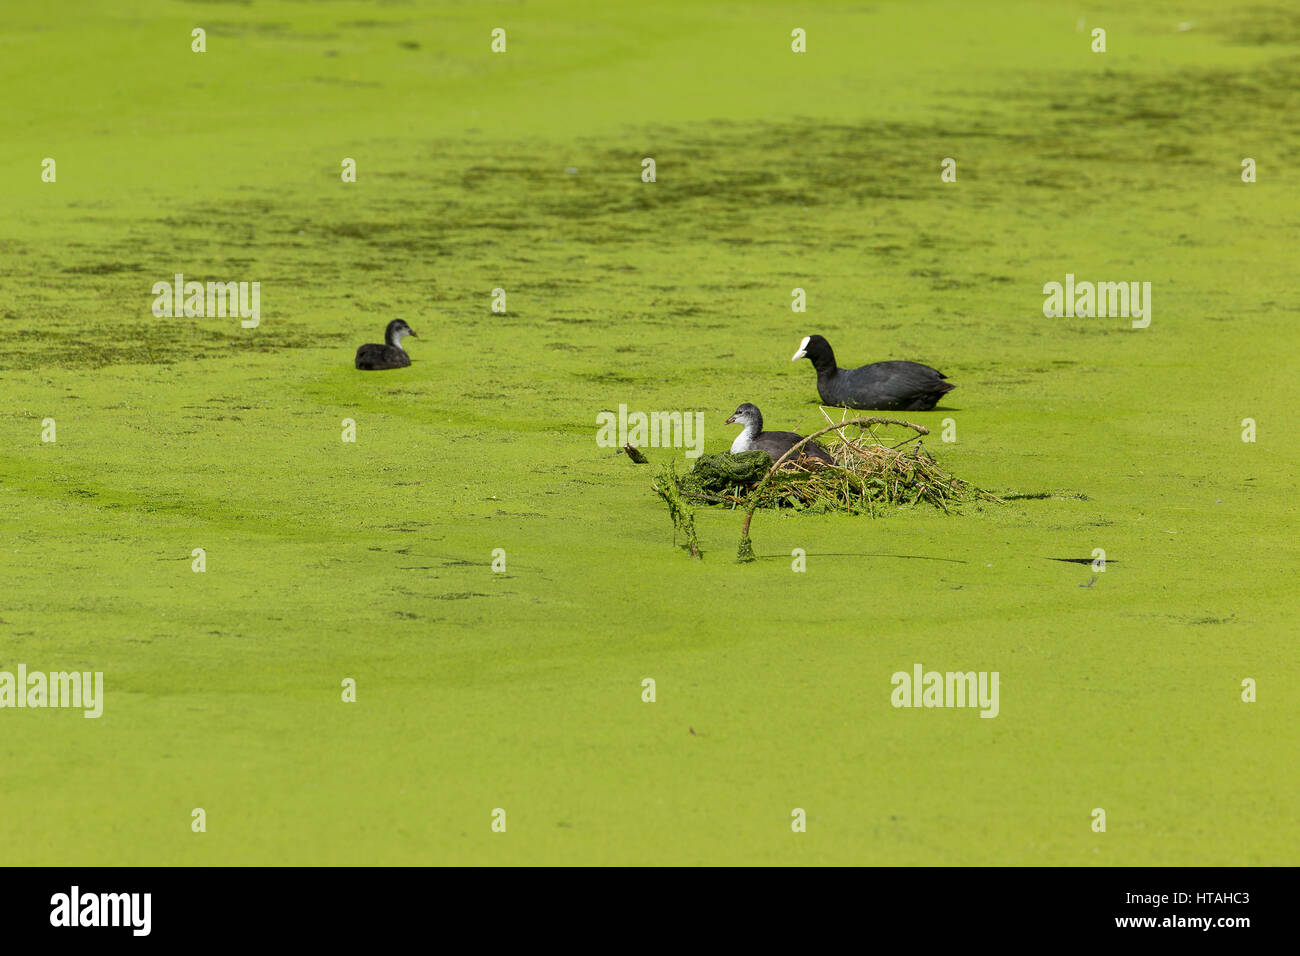 Moor Hens and chick surrounded by algae on pond - Stock Image